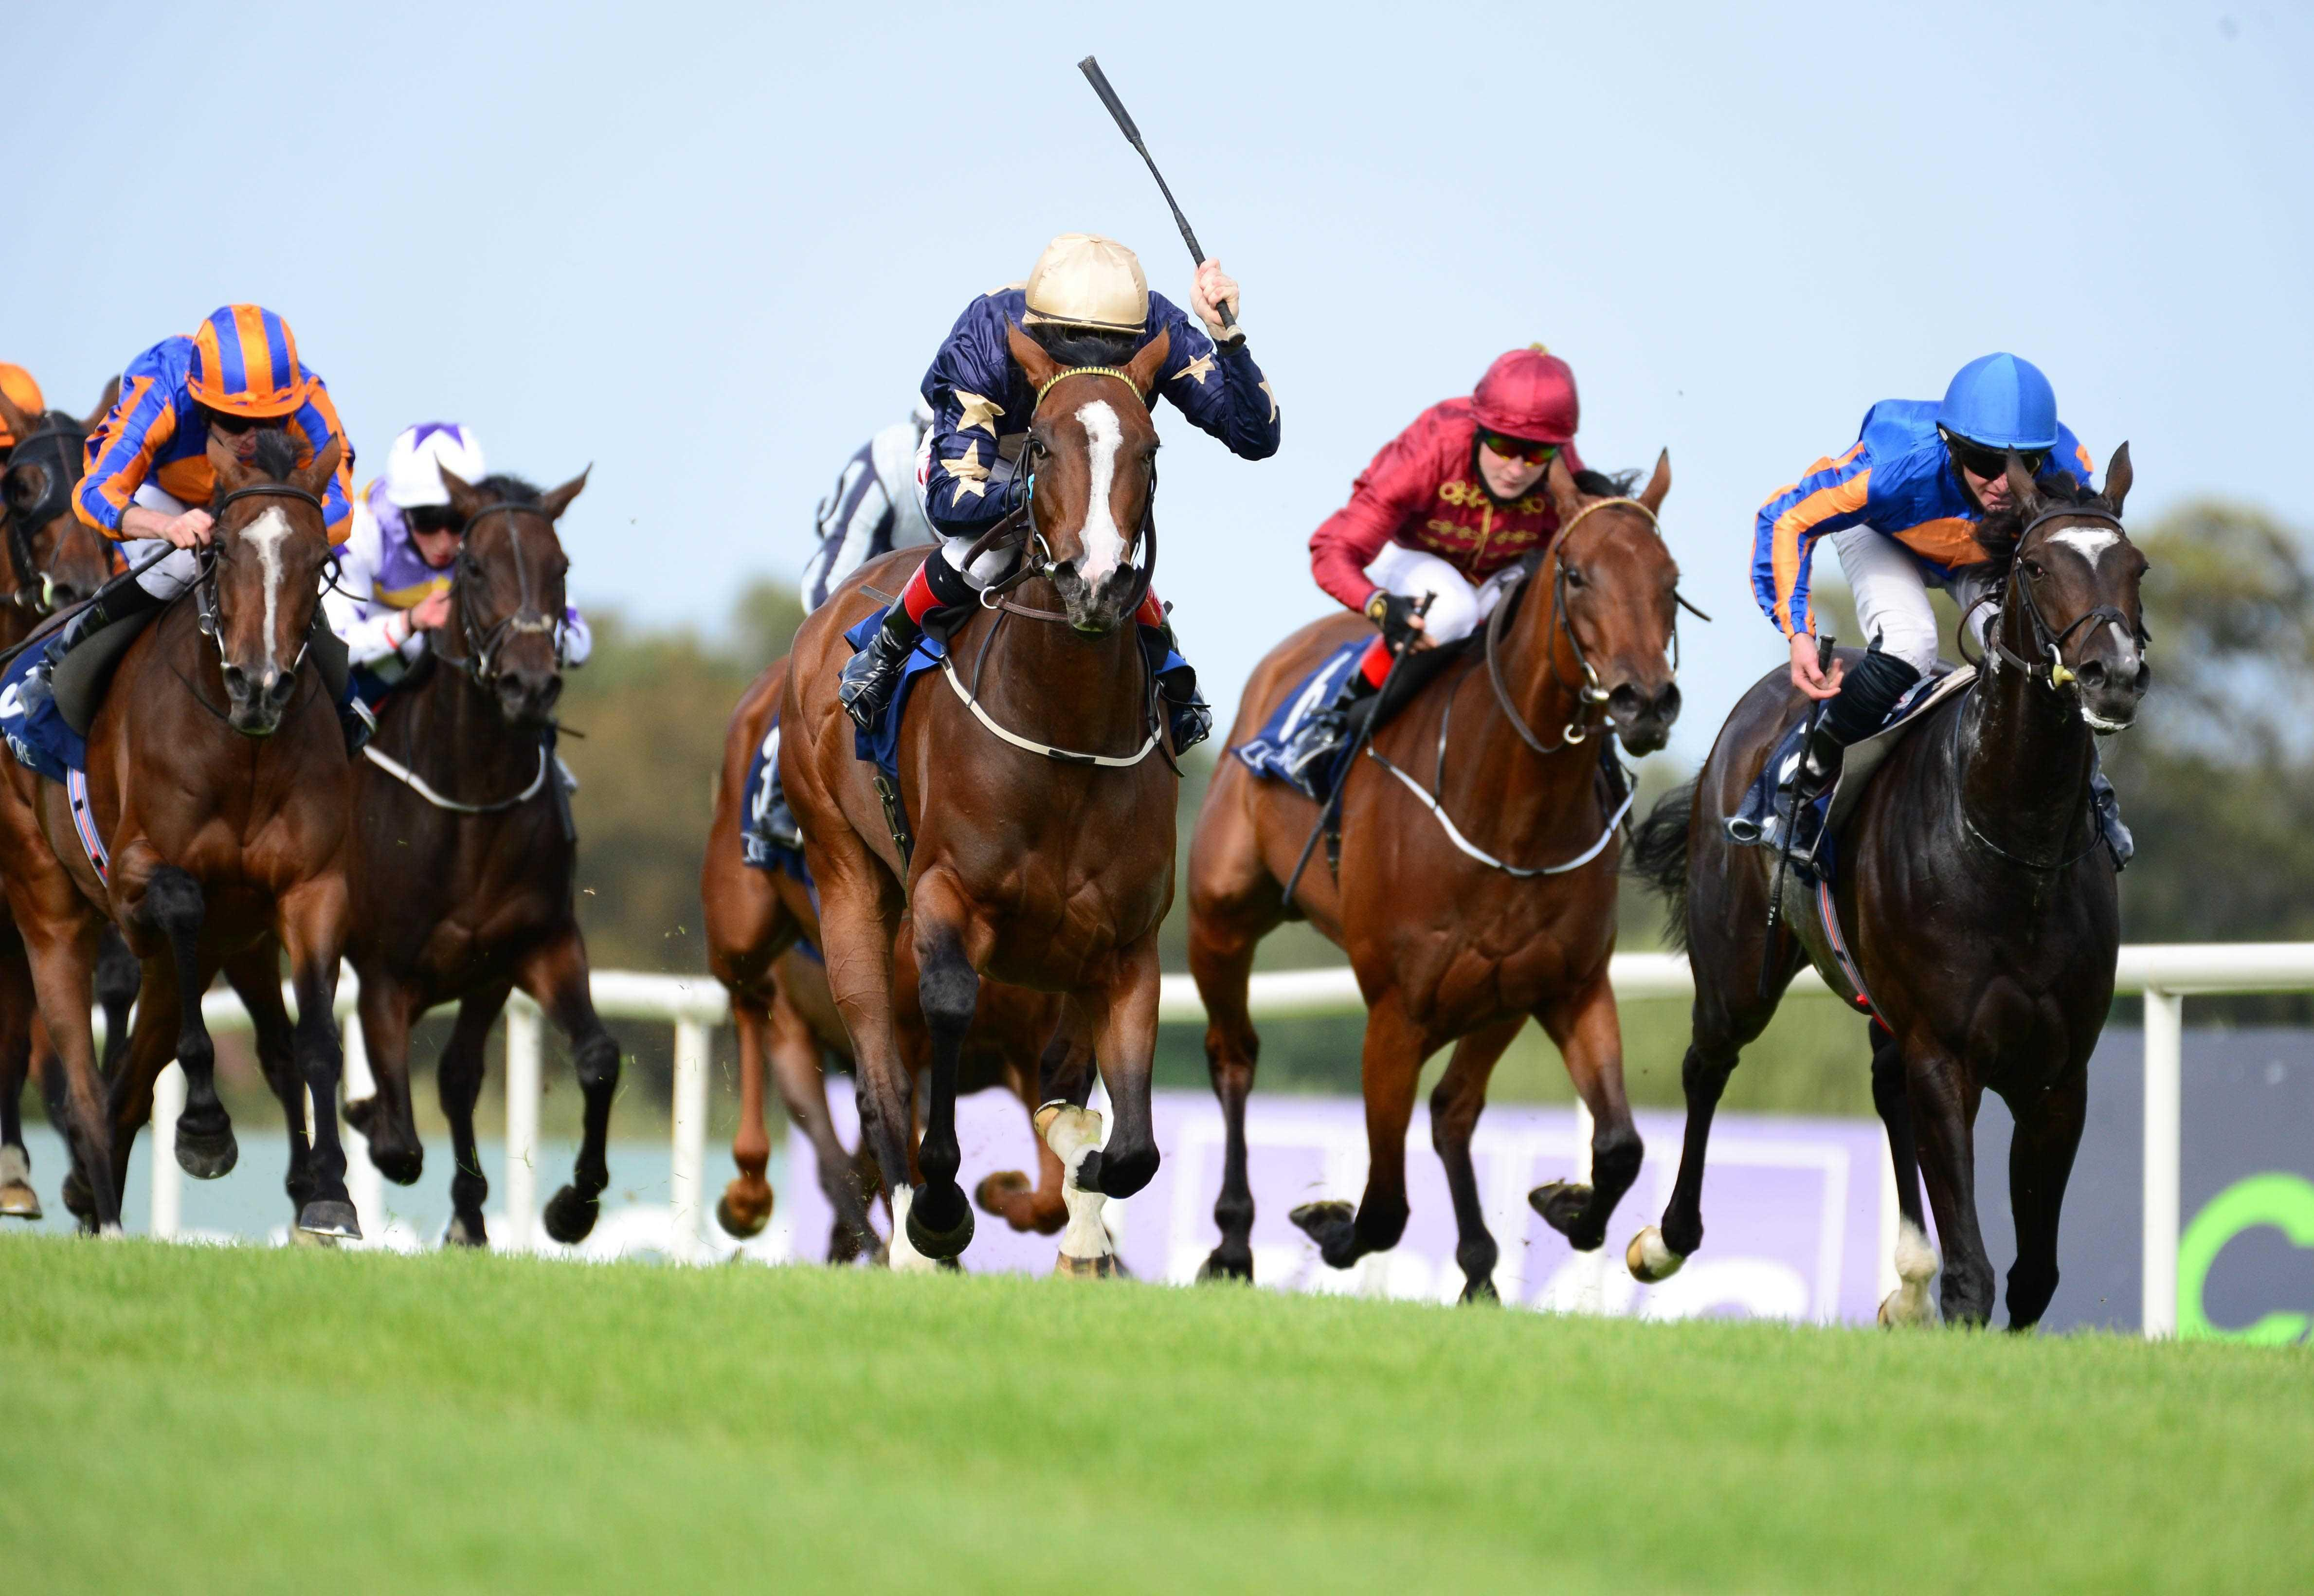 LEOPARDSTOWN REVIEW: Ice cold Keane delivers Champers to crown Murtagh's season